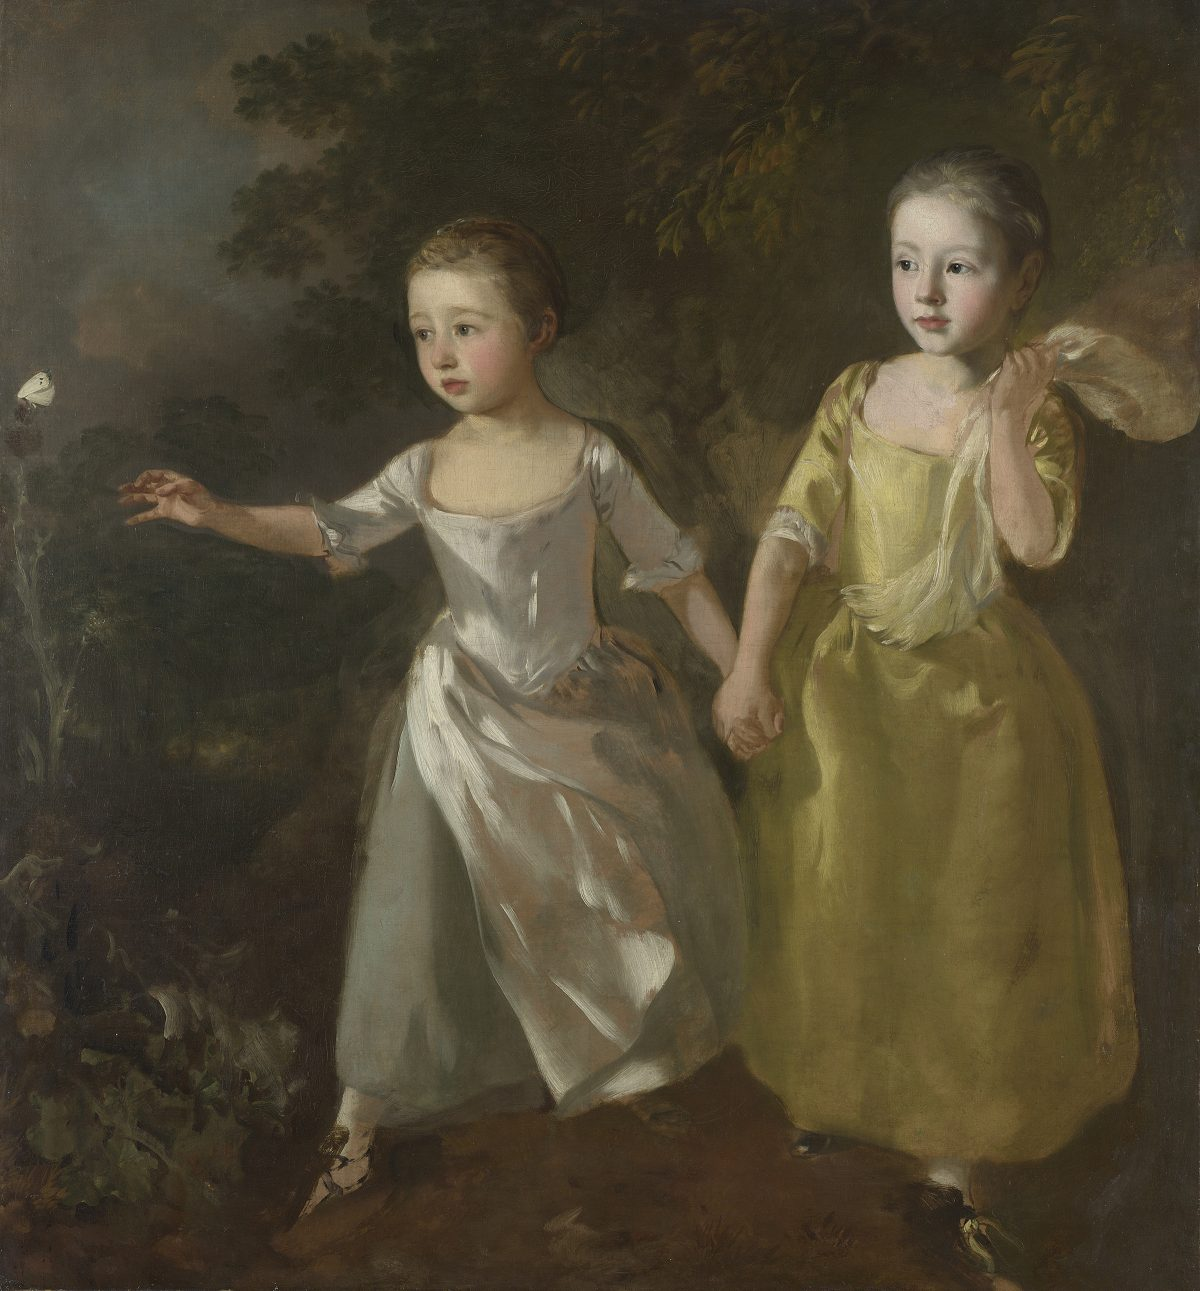 Two girls 18th century and butterfly